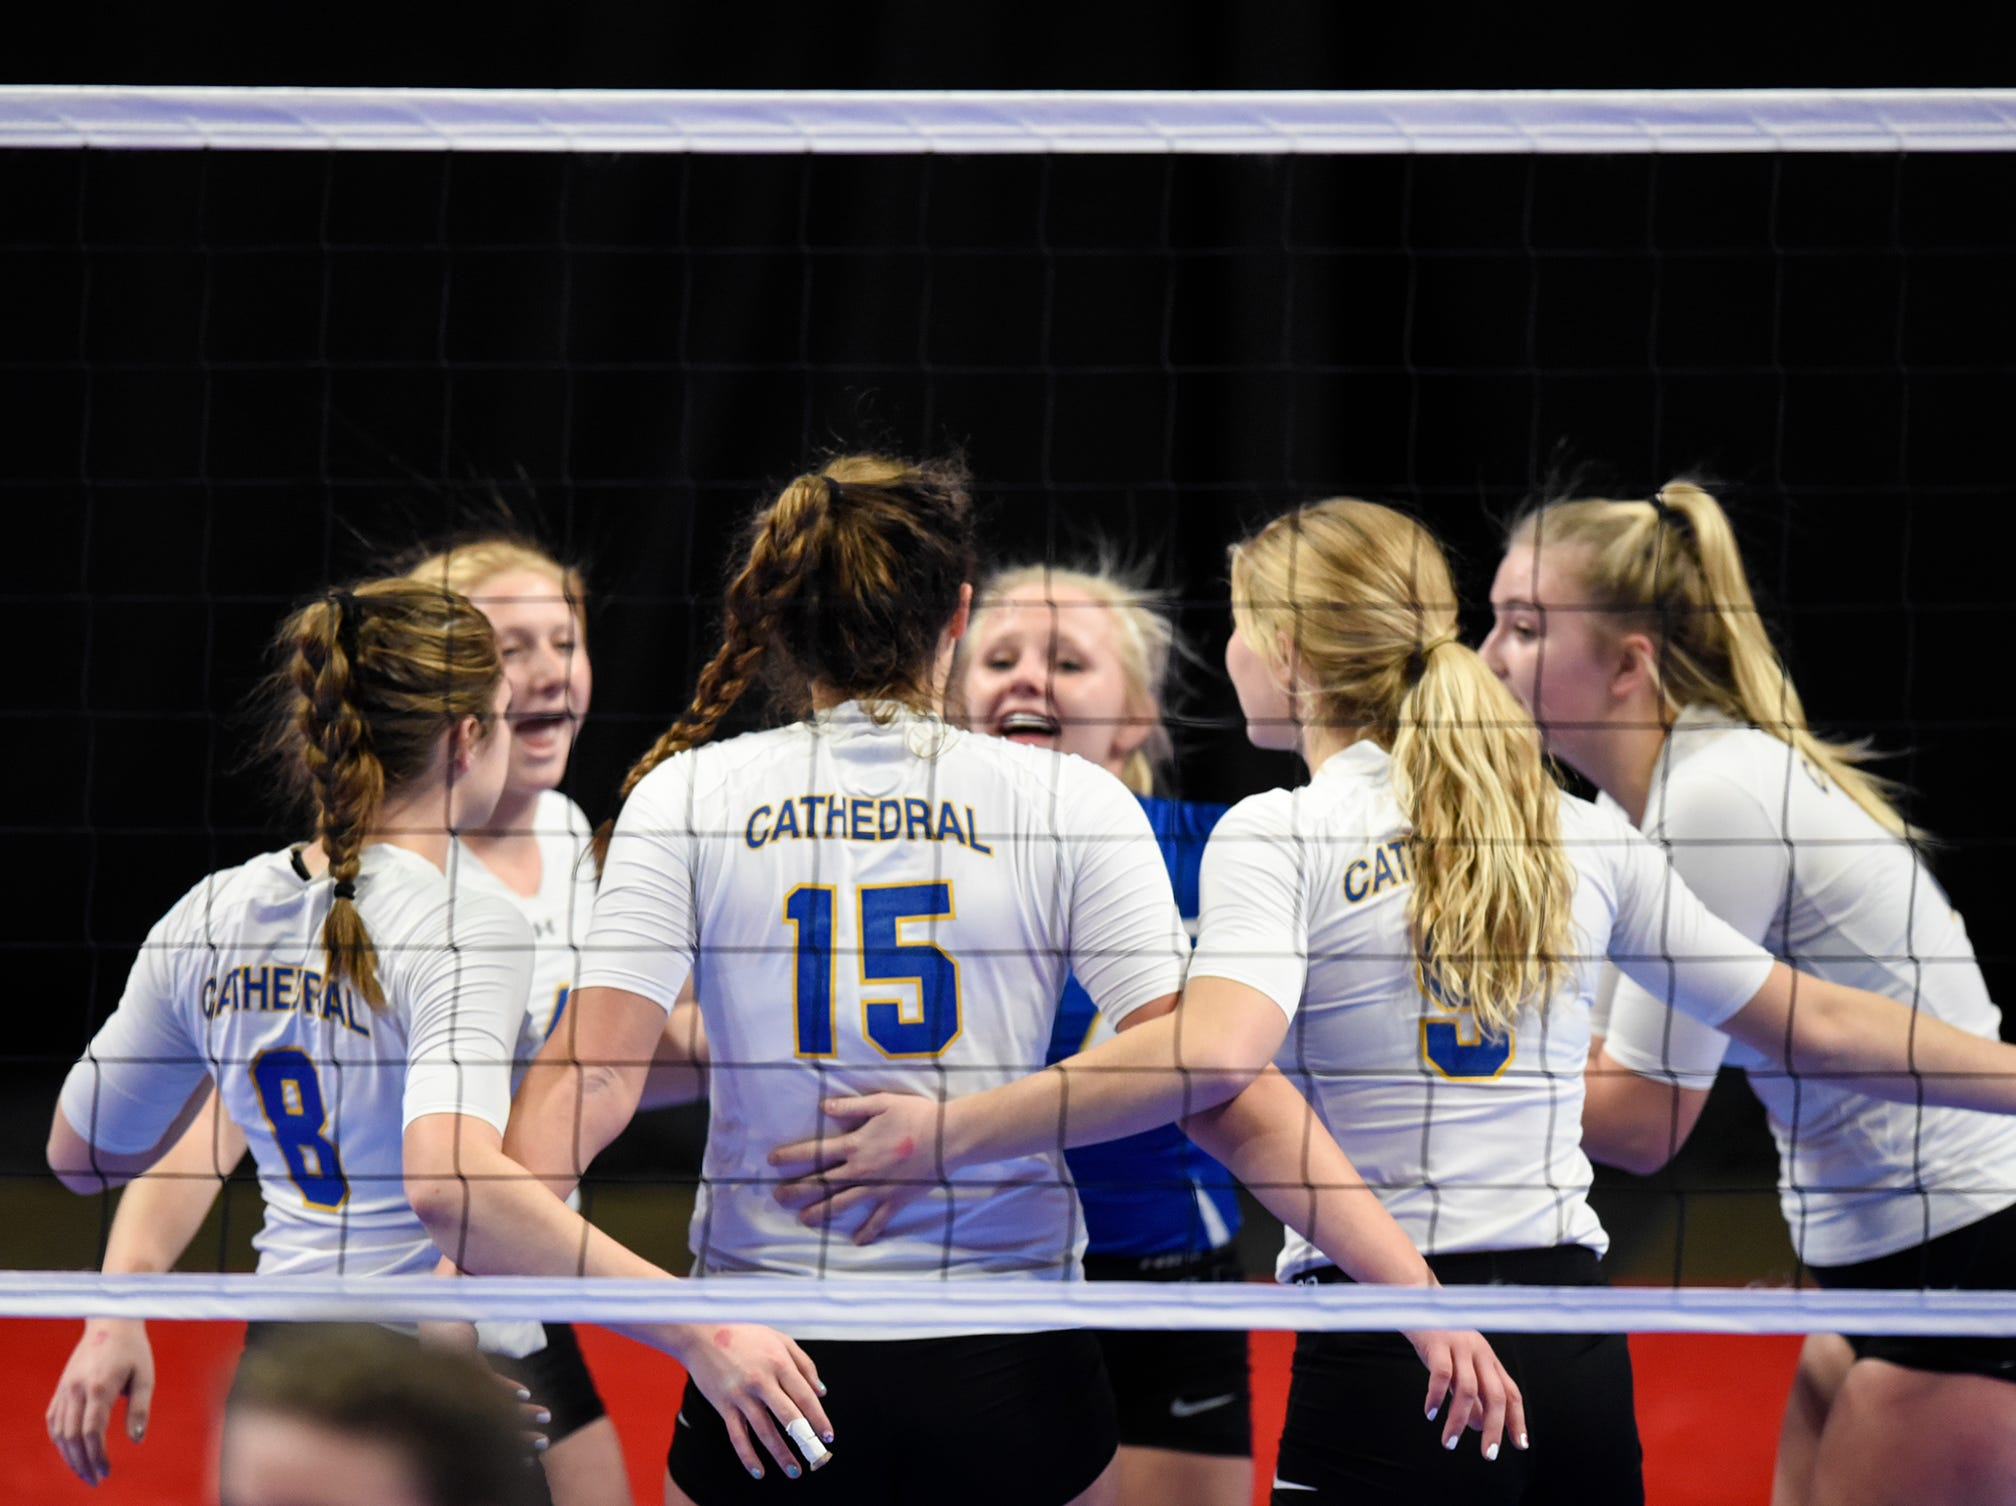 Cathedral players celebrate a point during the state Class 2A quarterfinals Thursday, Nov. 8, at the Xcel Energy Center in St. Paul.